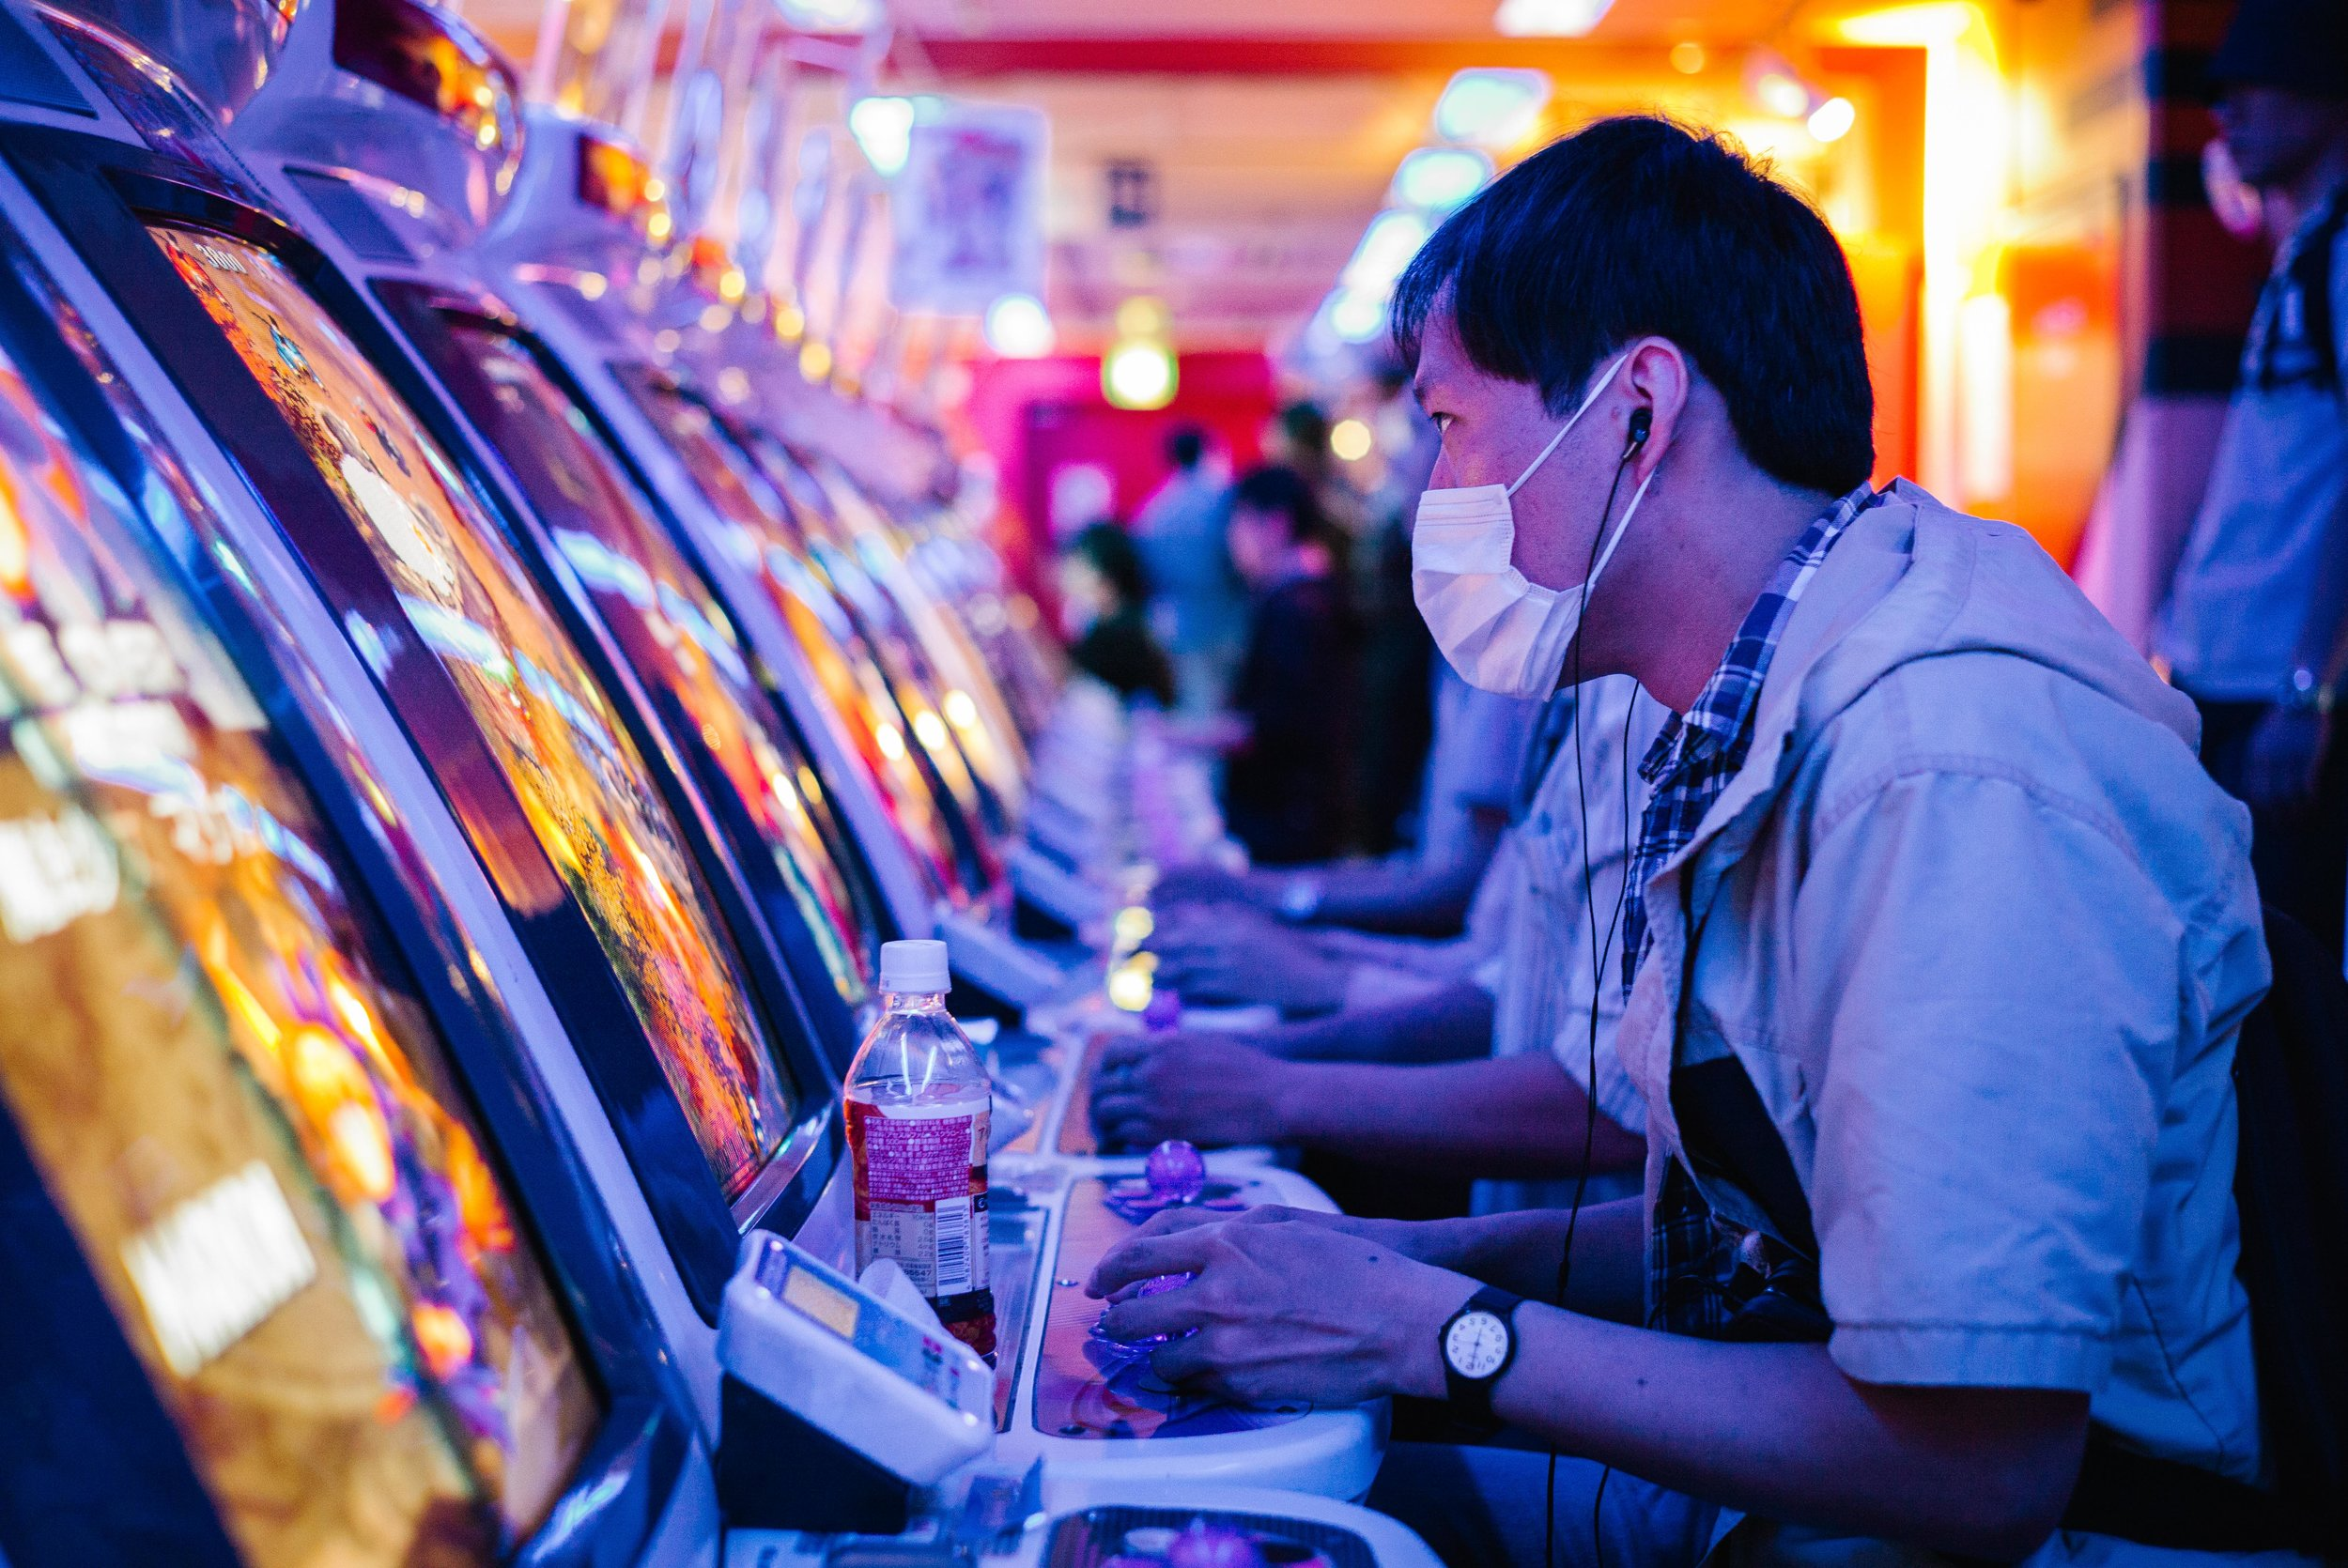 Japan's impact on the video game industry dates back to as early as 1971. Tokyo. Japan. 2017.